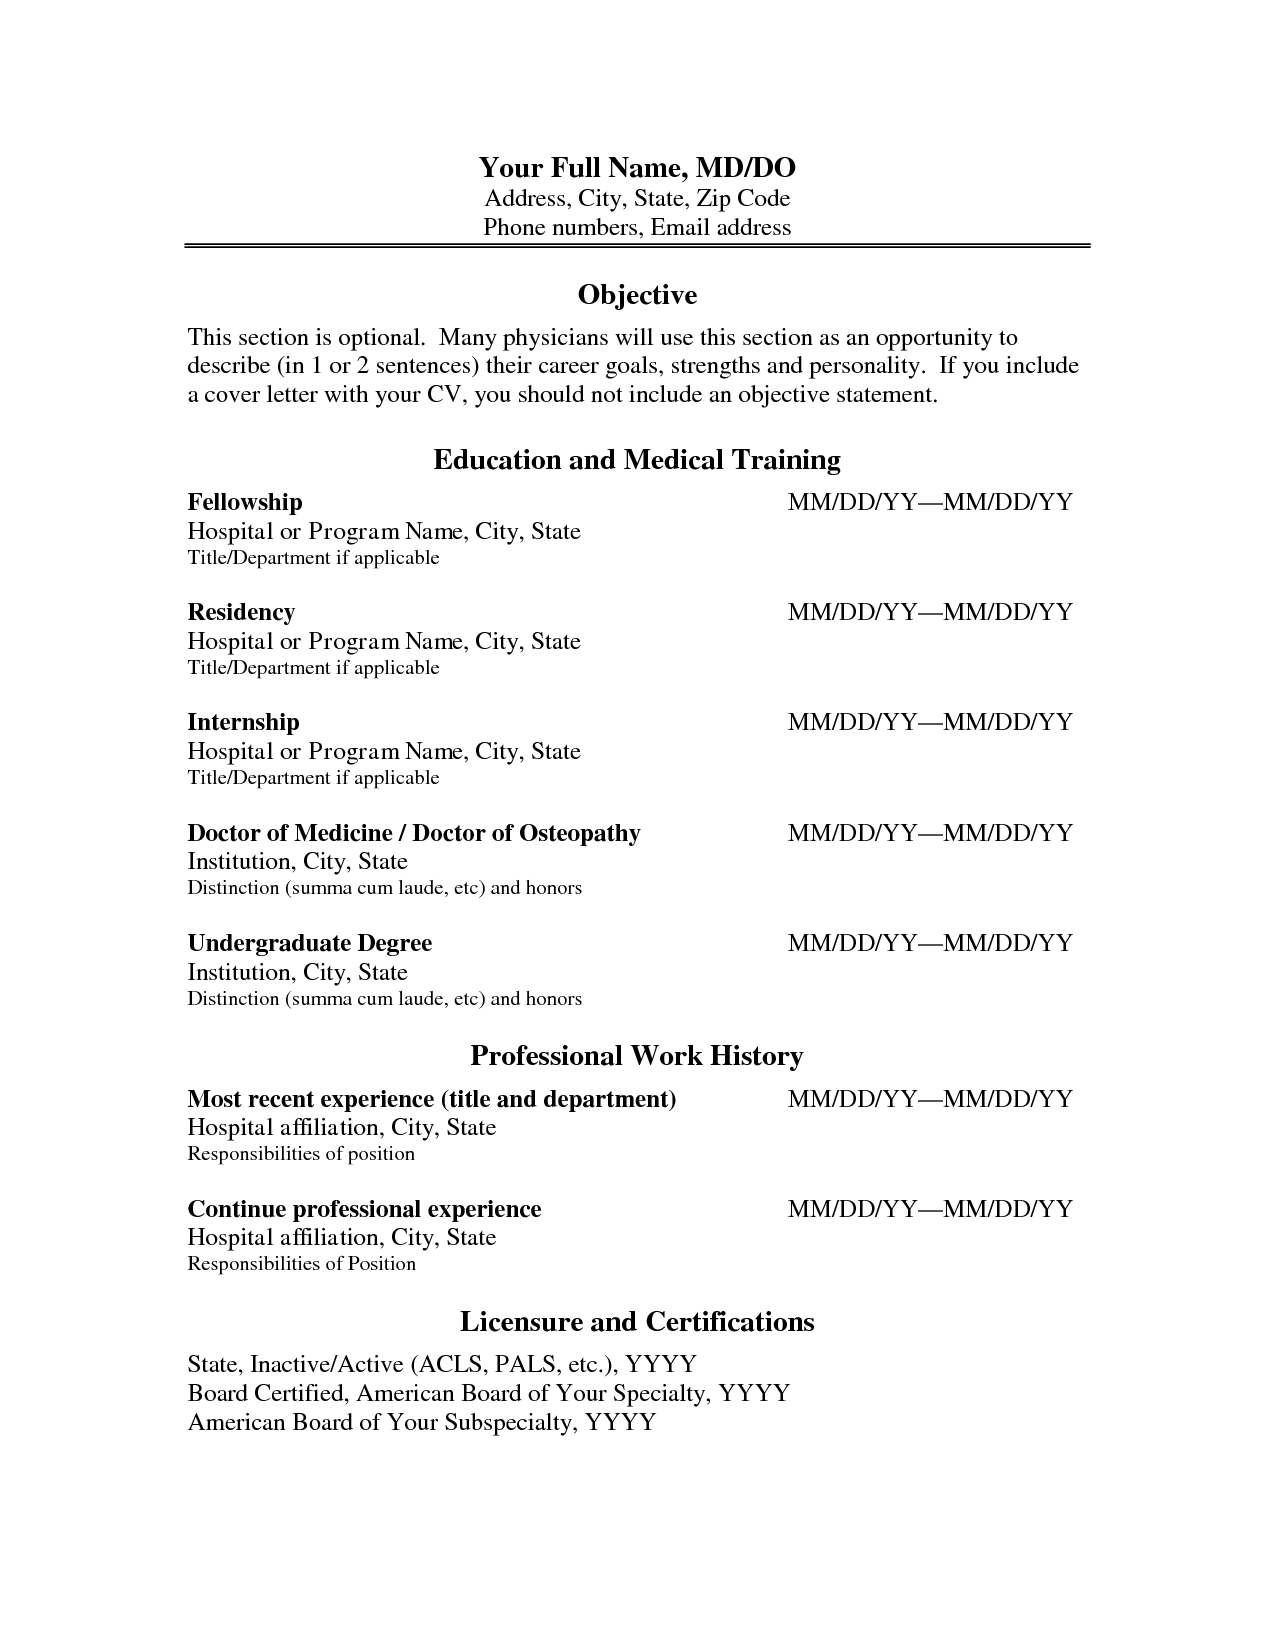 Physician Assistant Resume Cv Format Physician Physician Assistant Resume And Curriculum